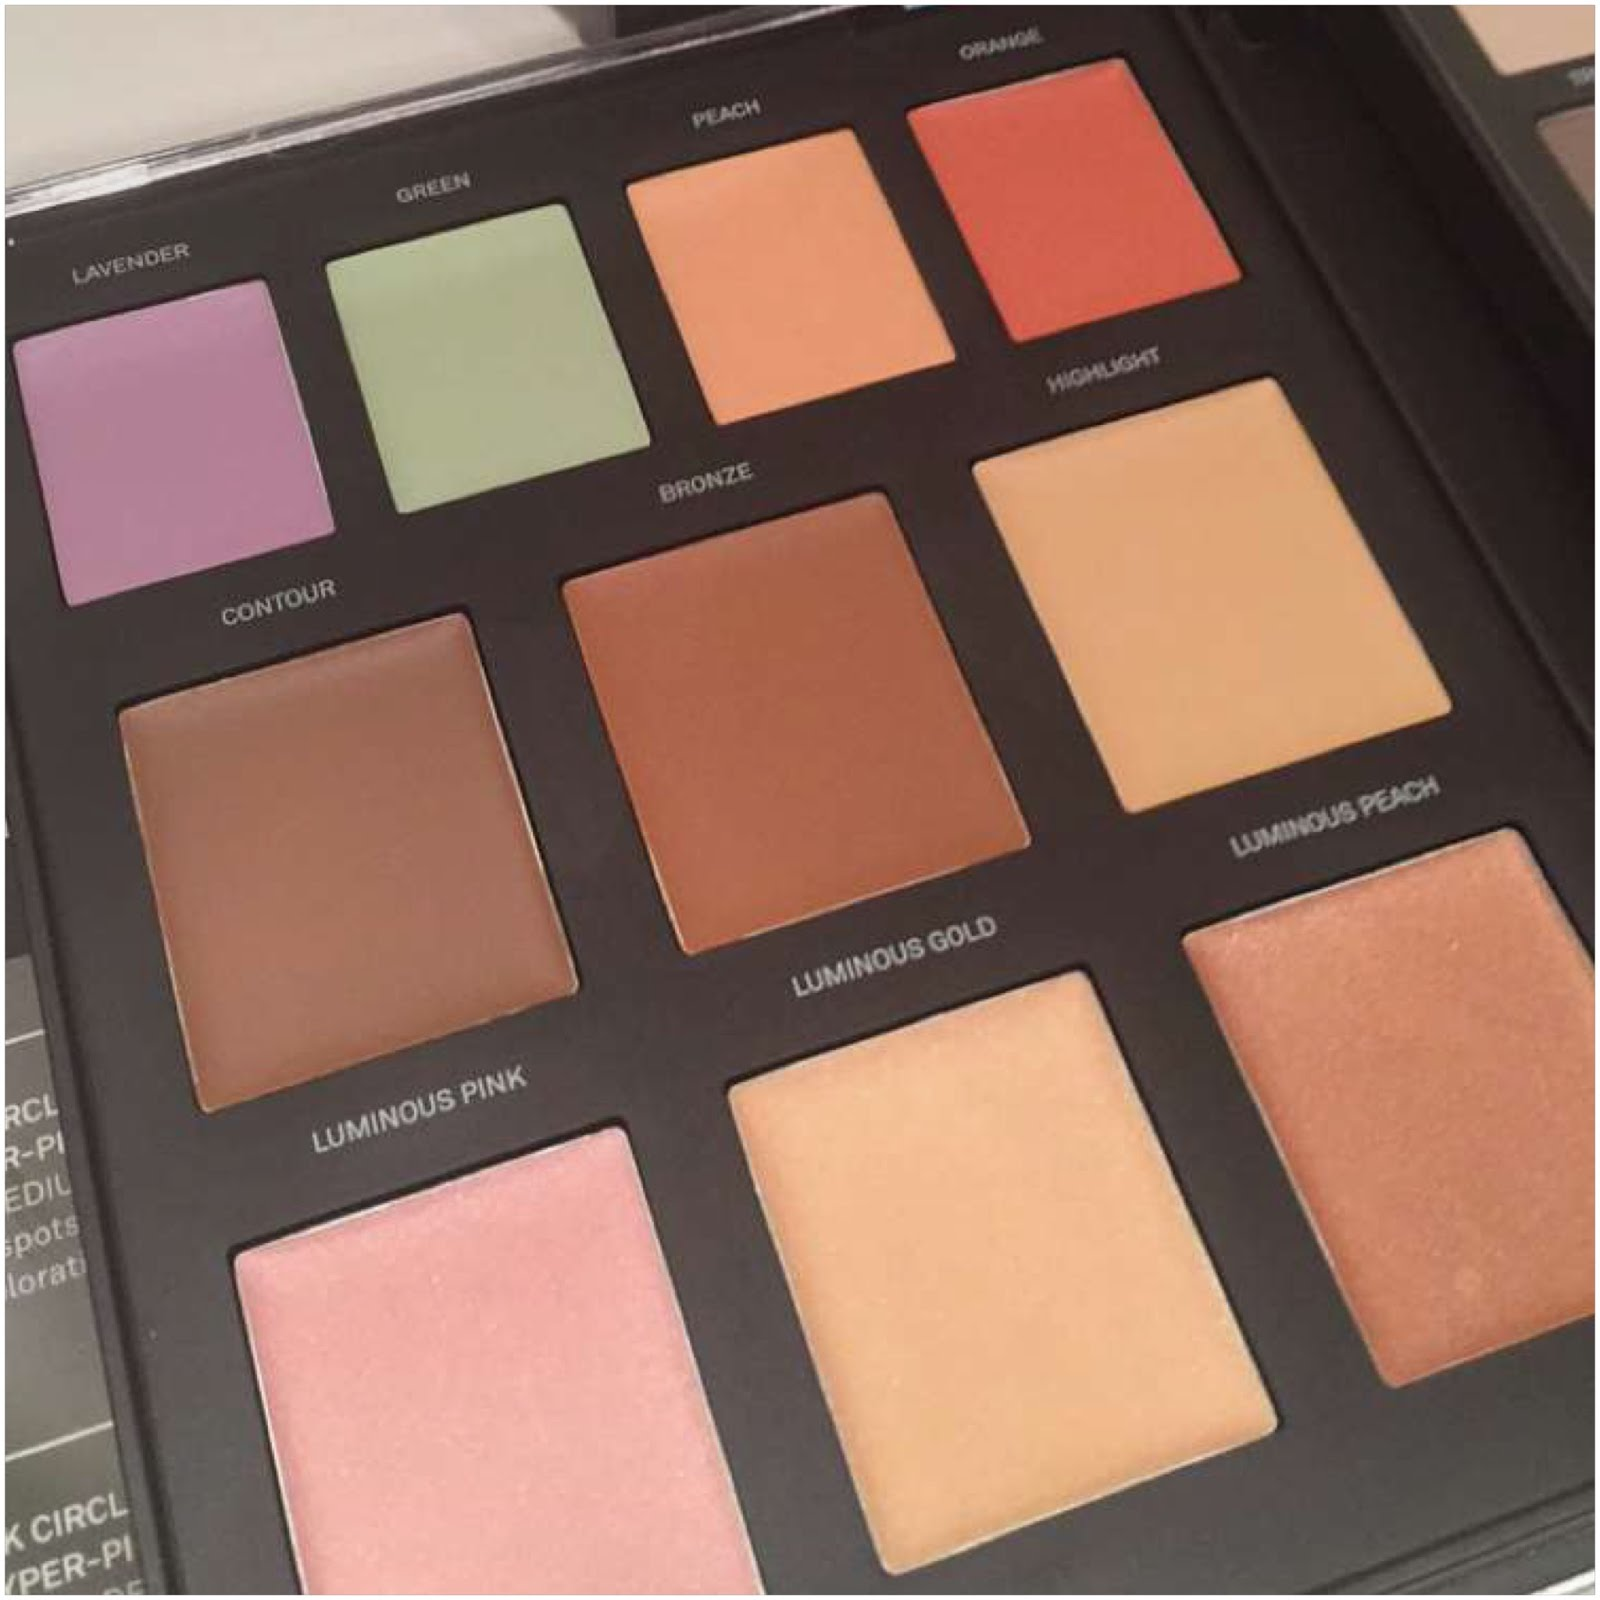 Upcoming Review: Smashbox Master Class Lighting Theory Palette